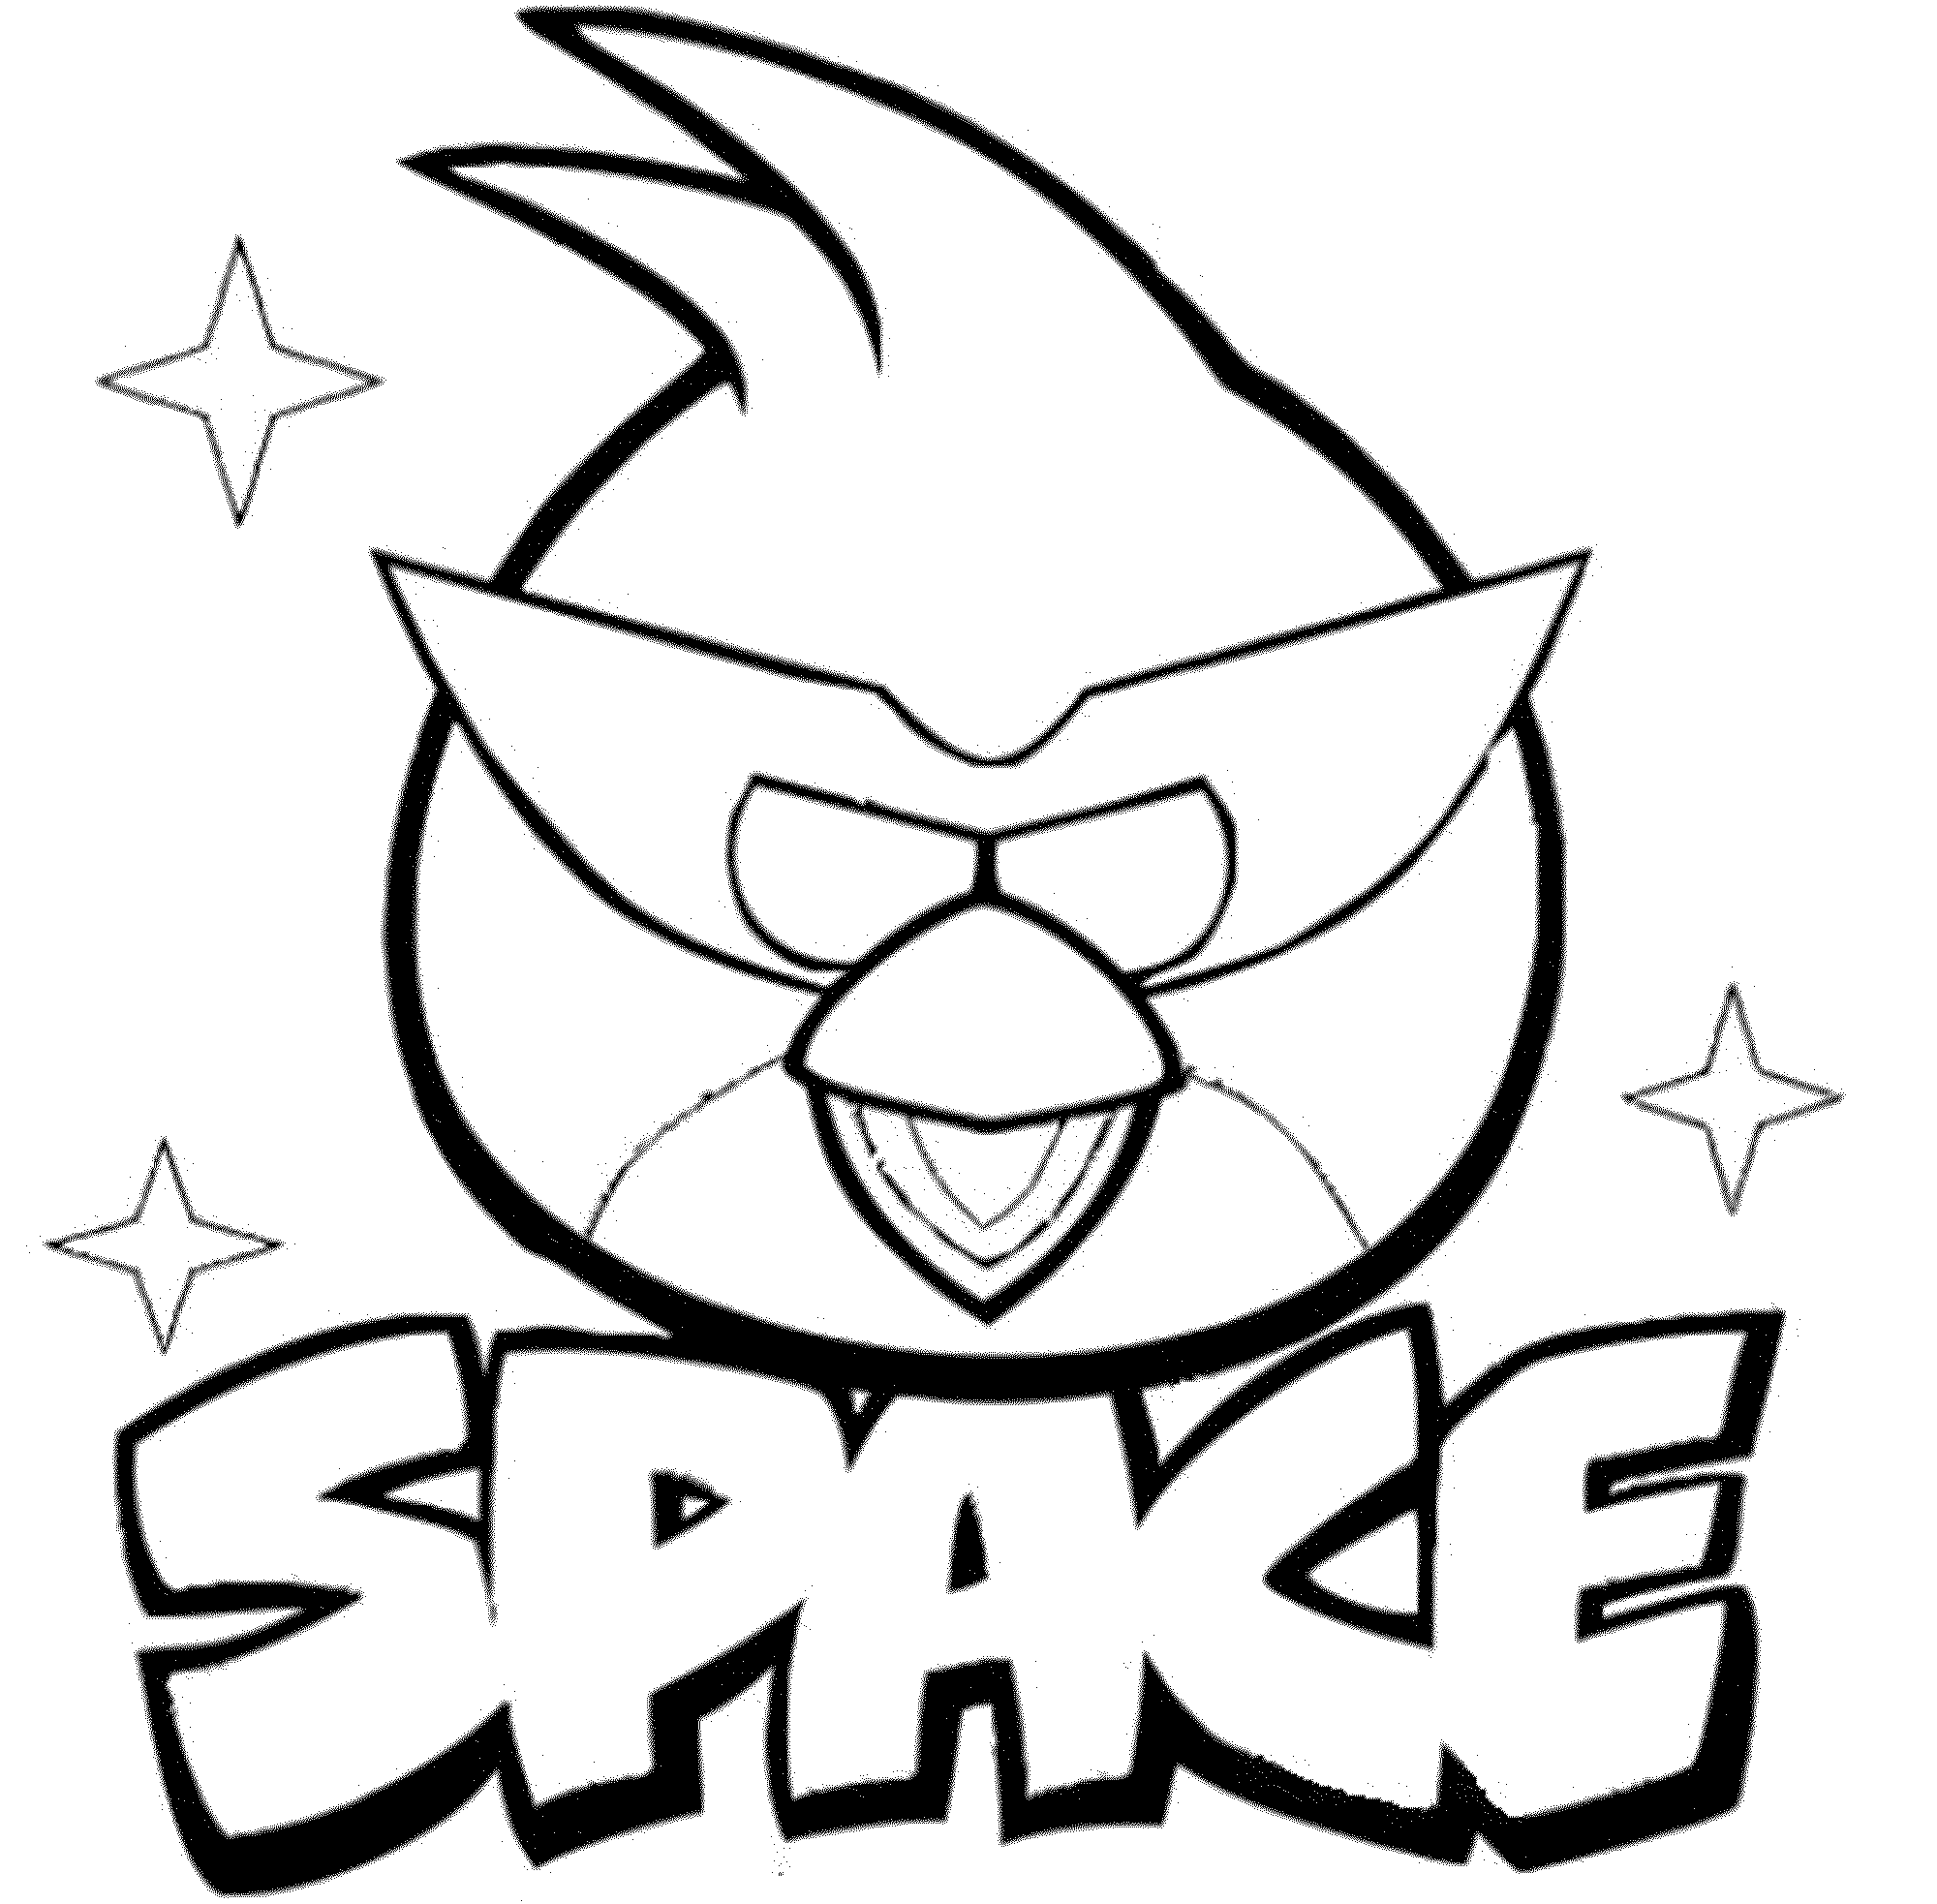 printable-angry-birds-coloring-pages | | BestAppsForKids.com